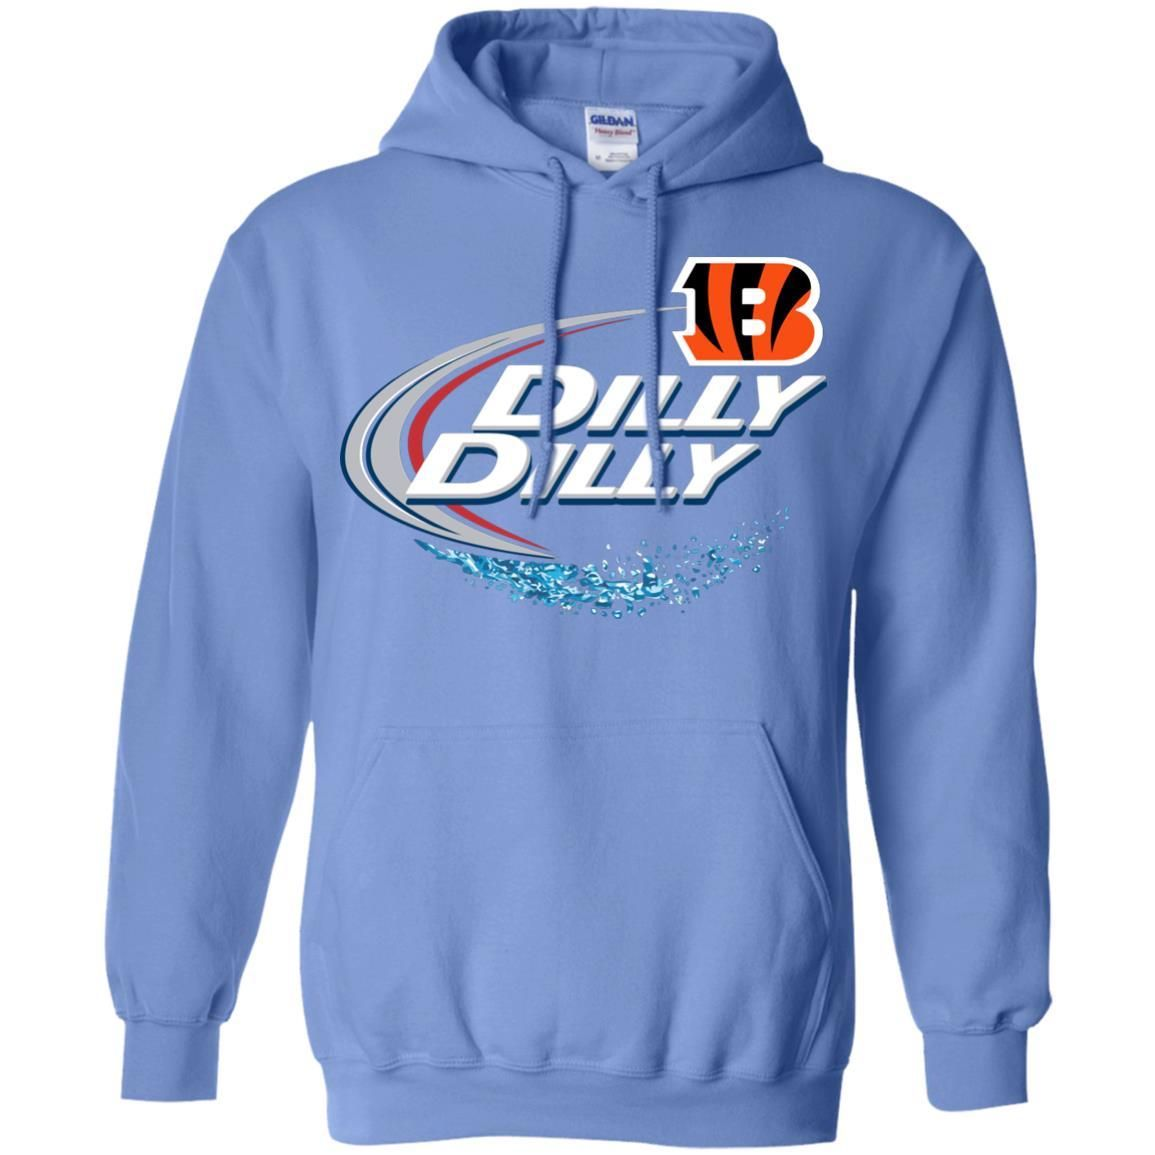 Dilly Dilly Cincinnati Bengals Nfl Football Team T-shirt Gift For Fan